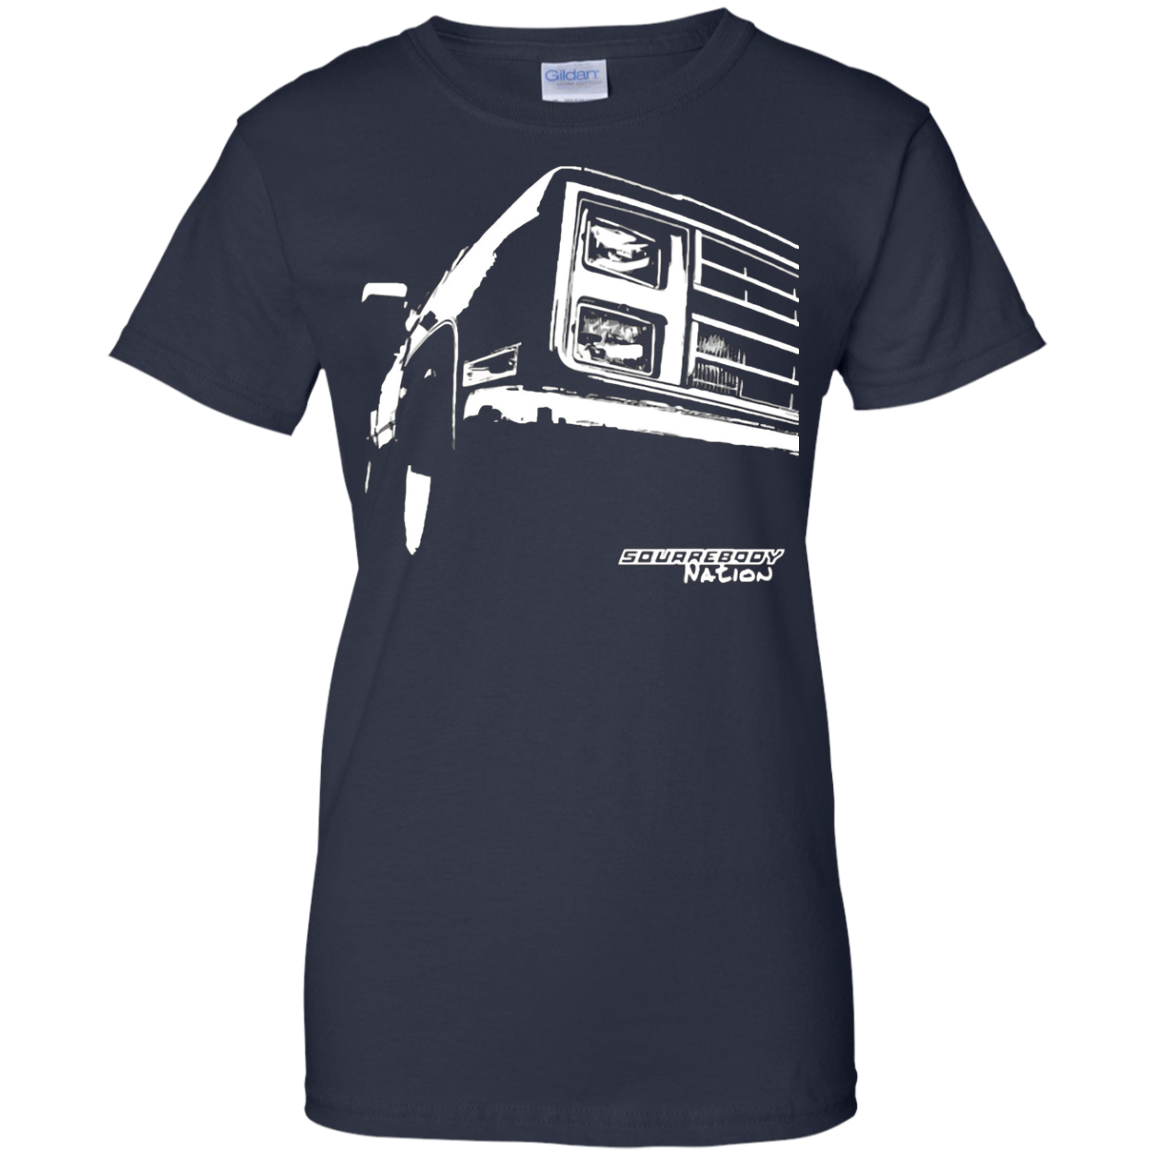 SQUAREBODY Nation Tees TShirt